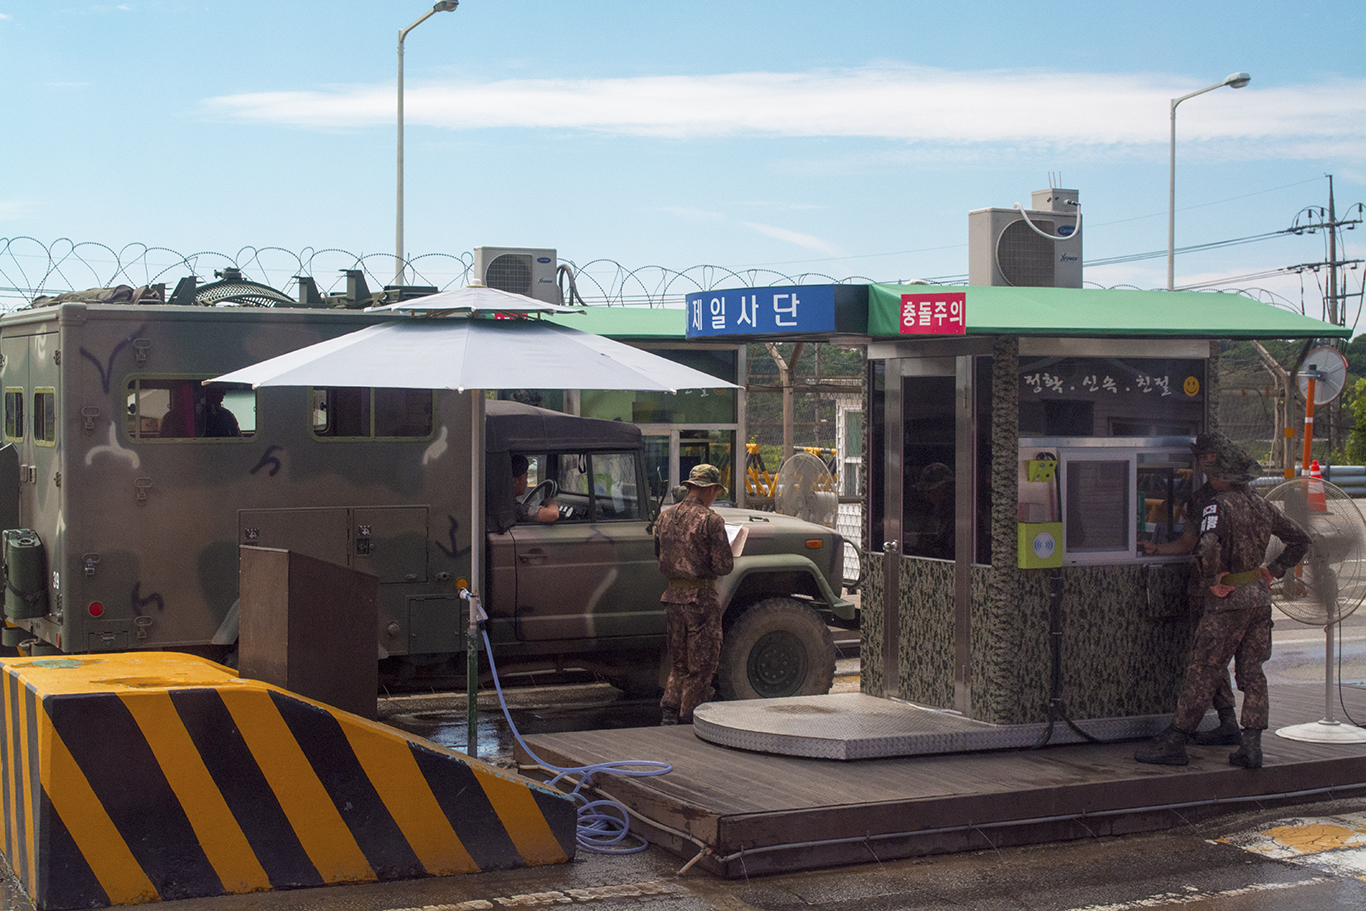 A South Korean military checkpoint at the entrance to the Korean Demilitarized Zone. Every vehicle that passes through the checkpoint is searched, and passport identification is required to gain entry,(CHRISTOPHER CAMERON/THE STATESMAN)